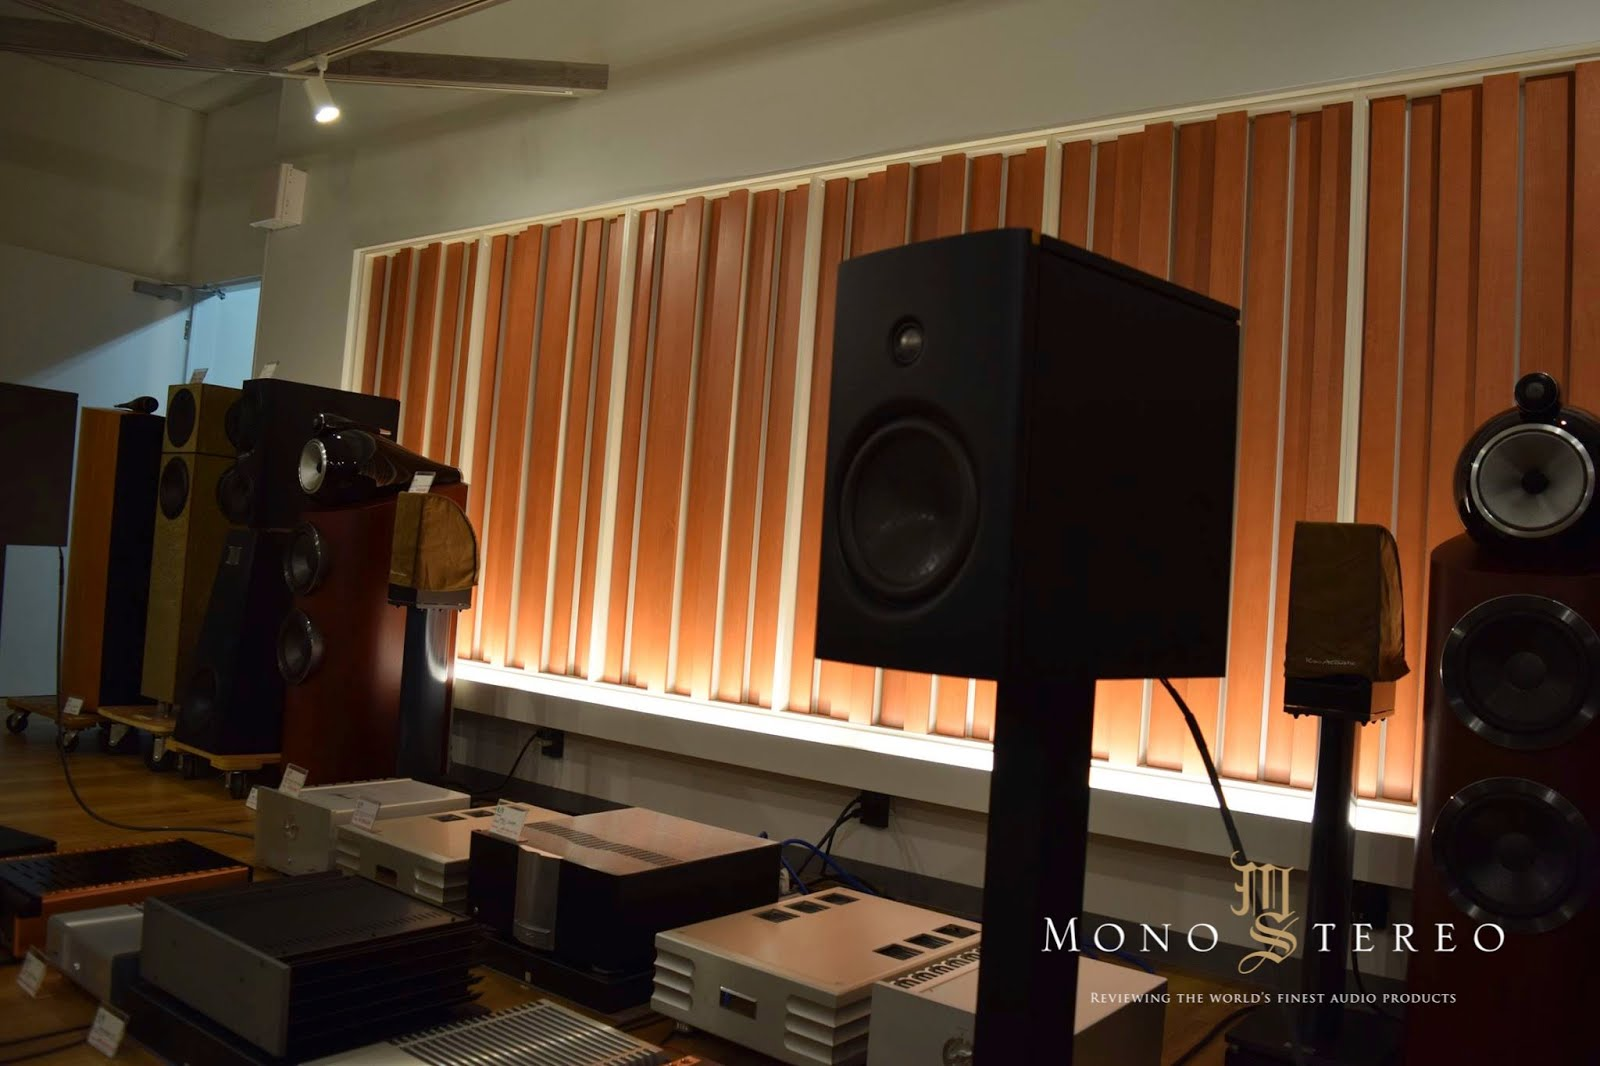 Japanese High End Audio Shop Gear Galore